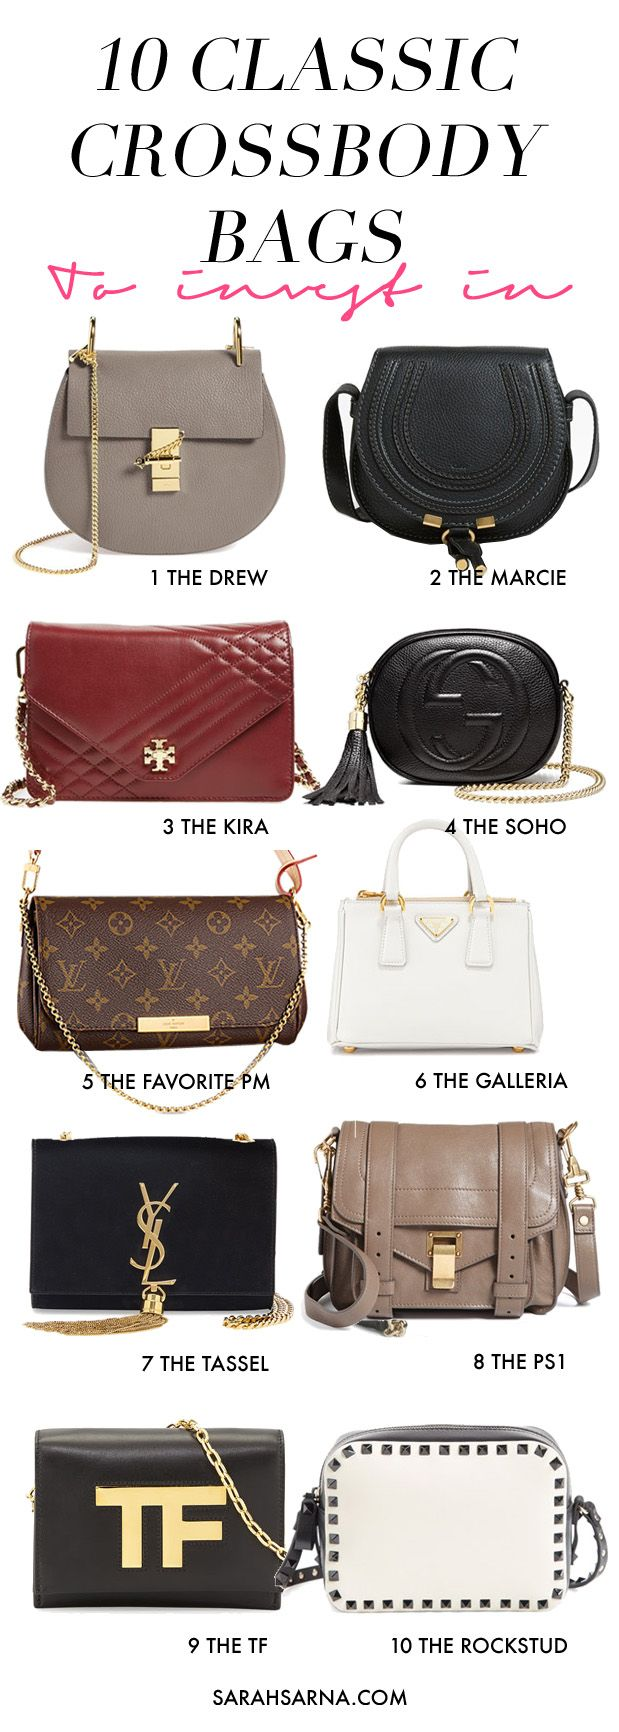 10 Classic Crossbody Bags to Invest InKiarra Laws